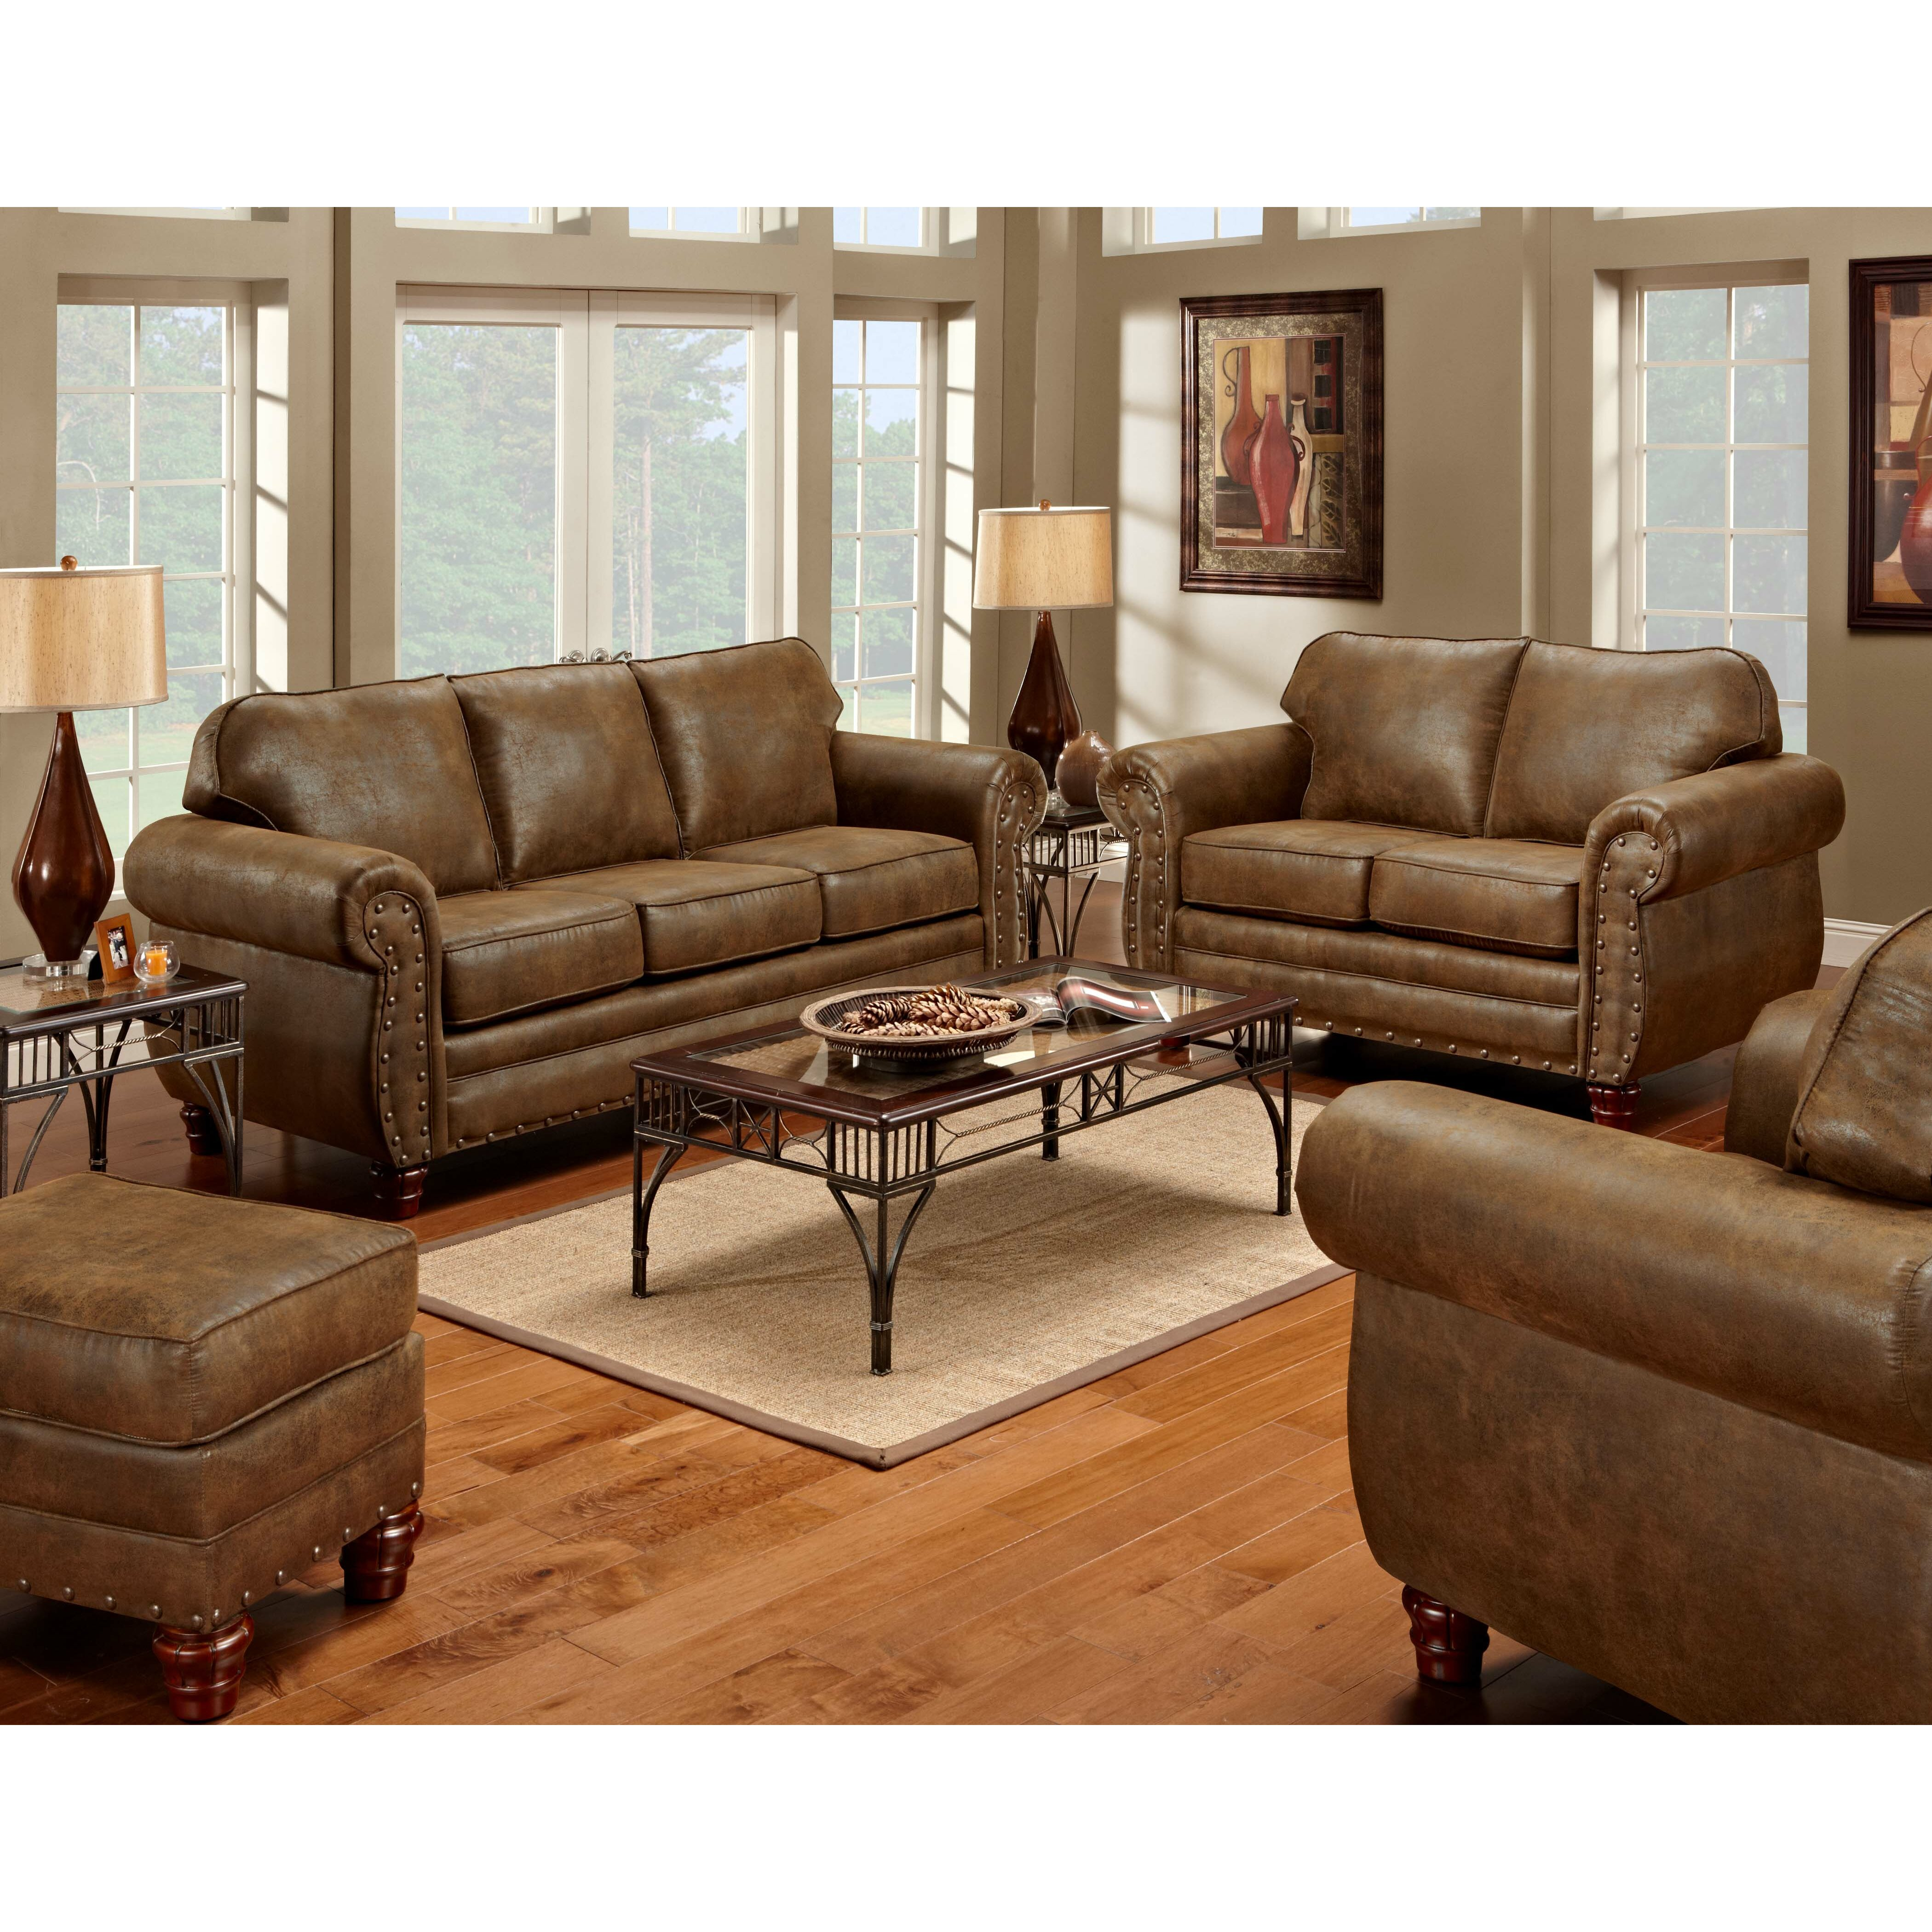 Sedona Nailhead Living Room Set